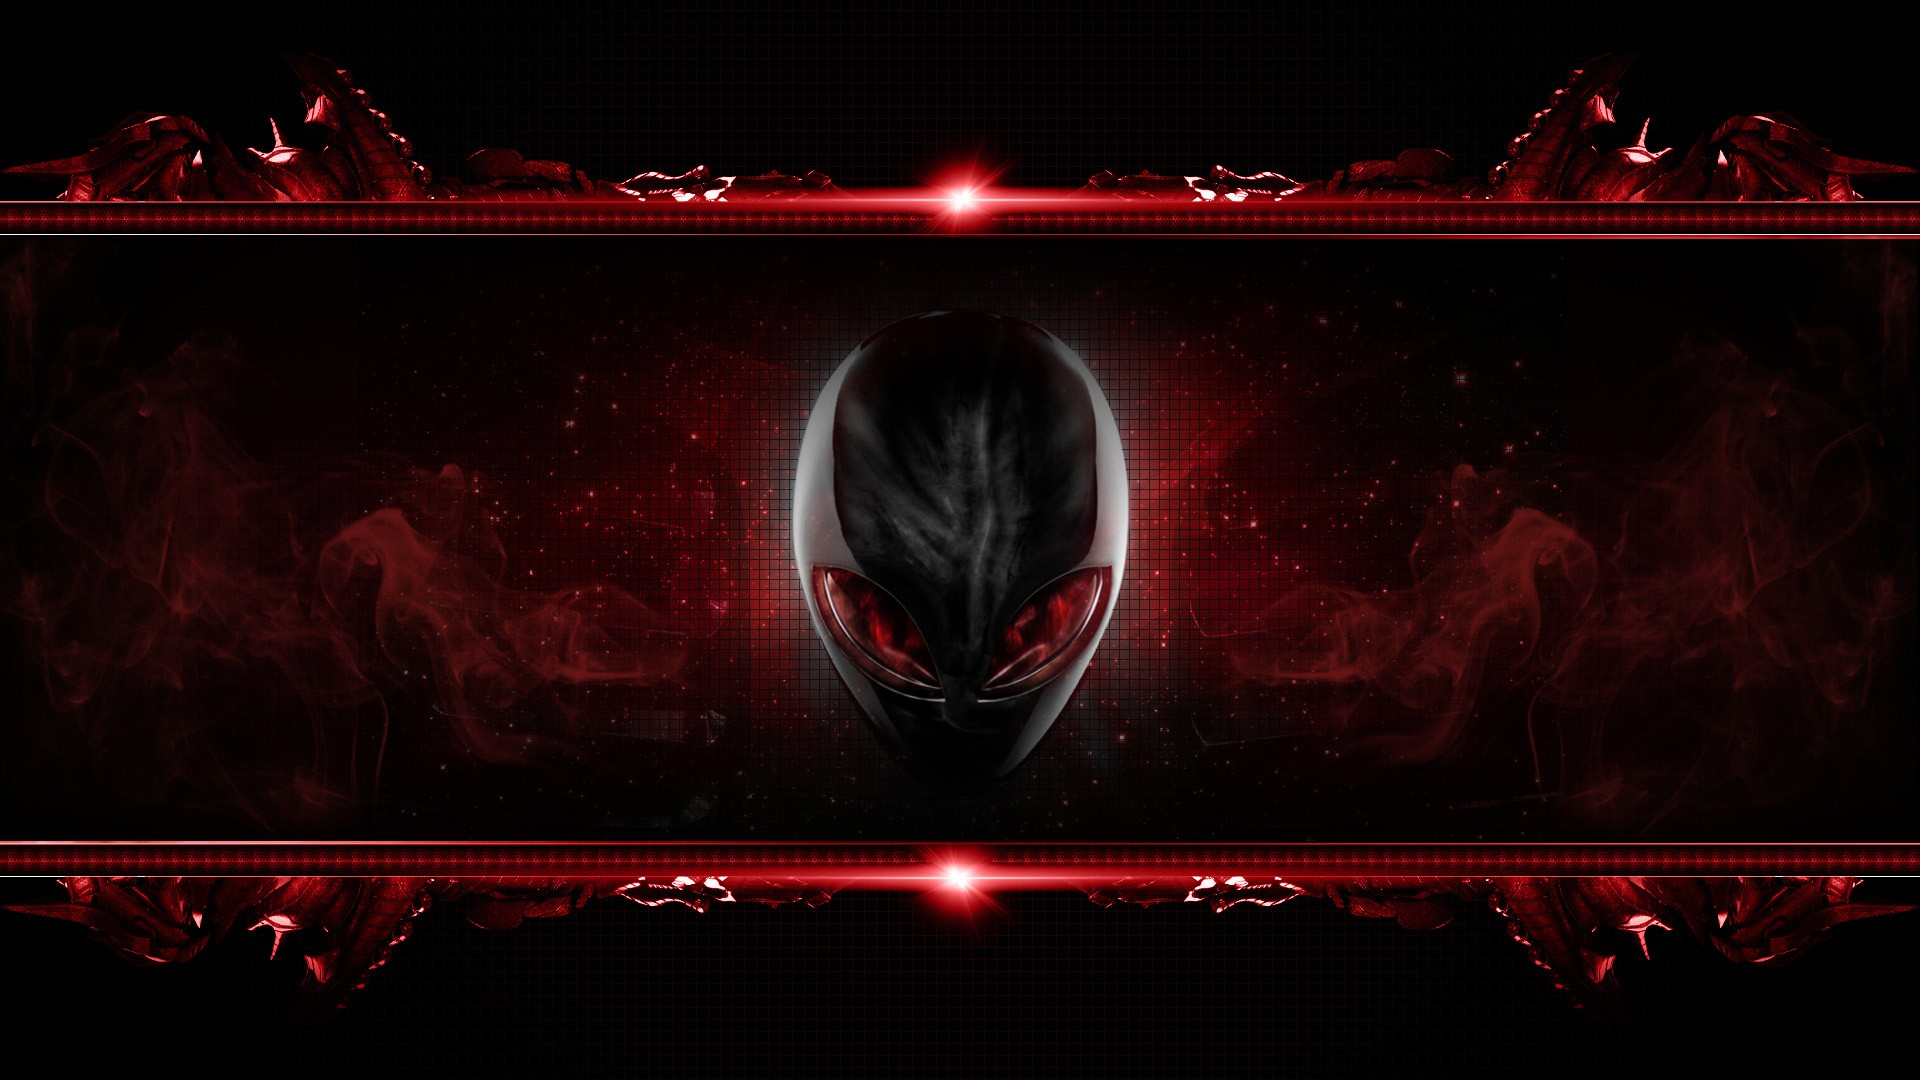 alienware wallpaper laptops desktops backgrounds wallpapers 1920x1080 1920x1080